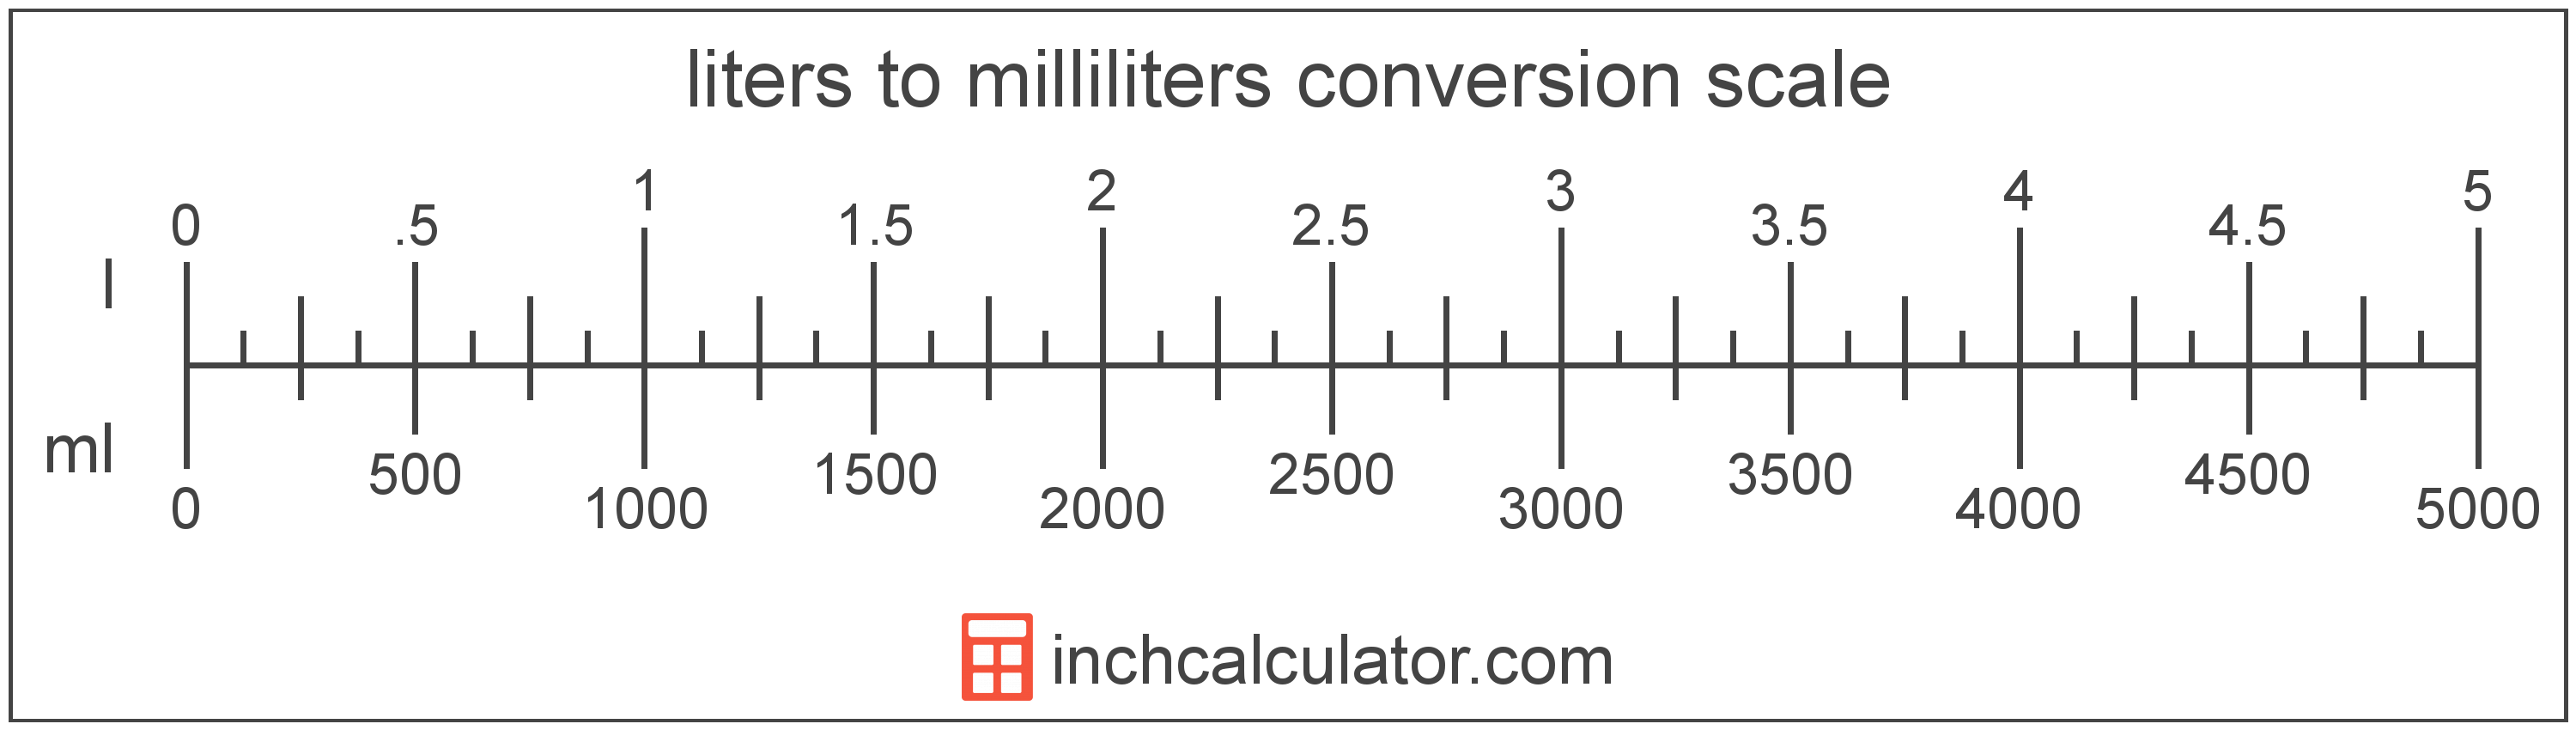 conversion scale showing liters and equivalent milliliters volume values